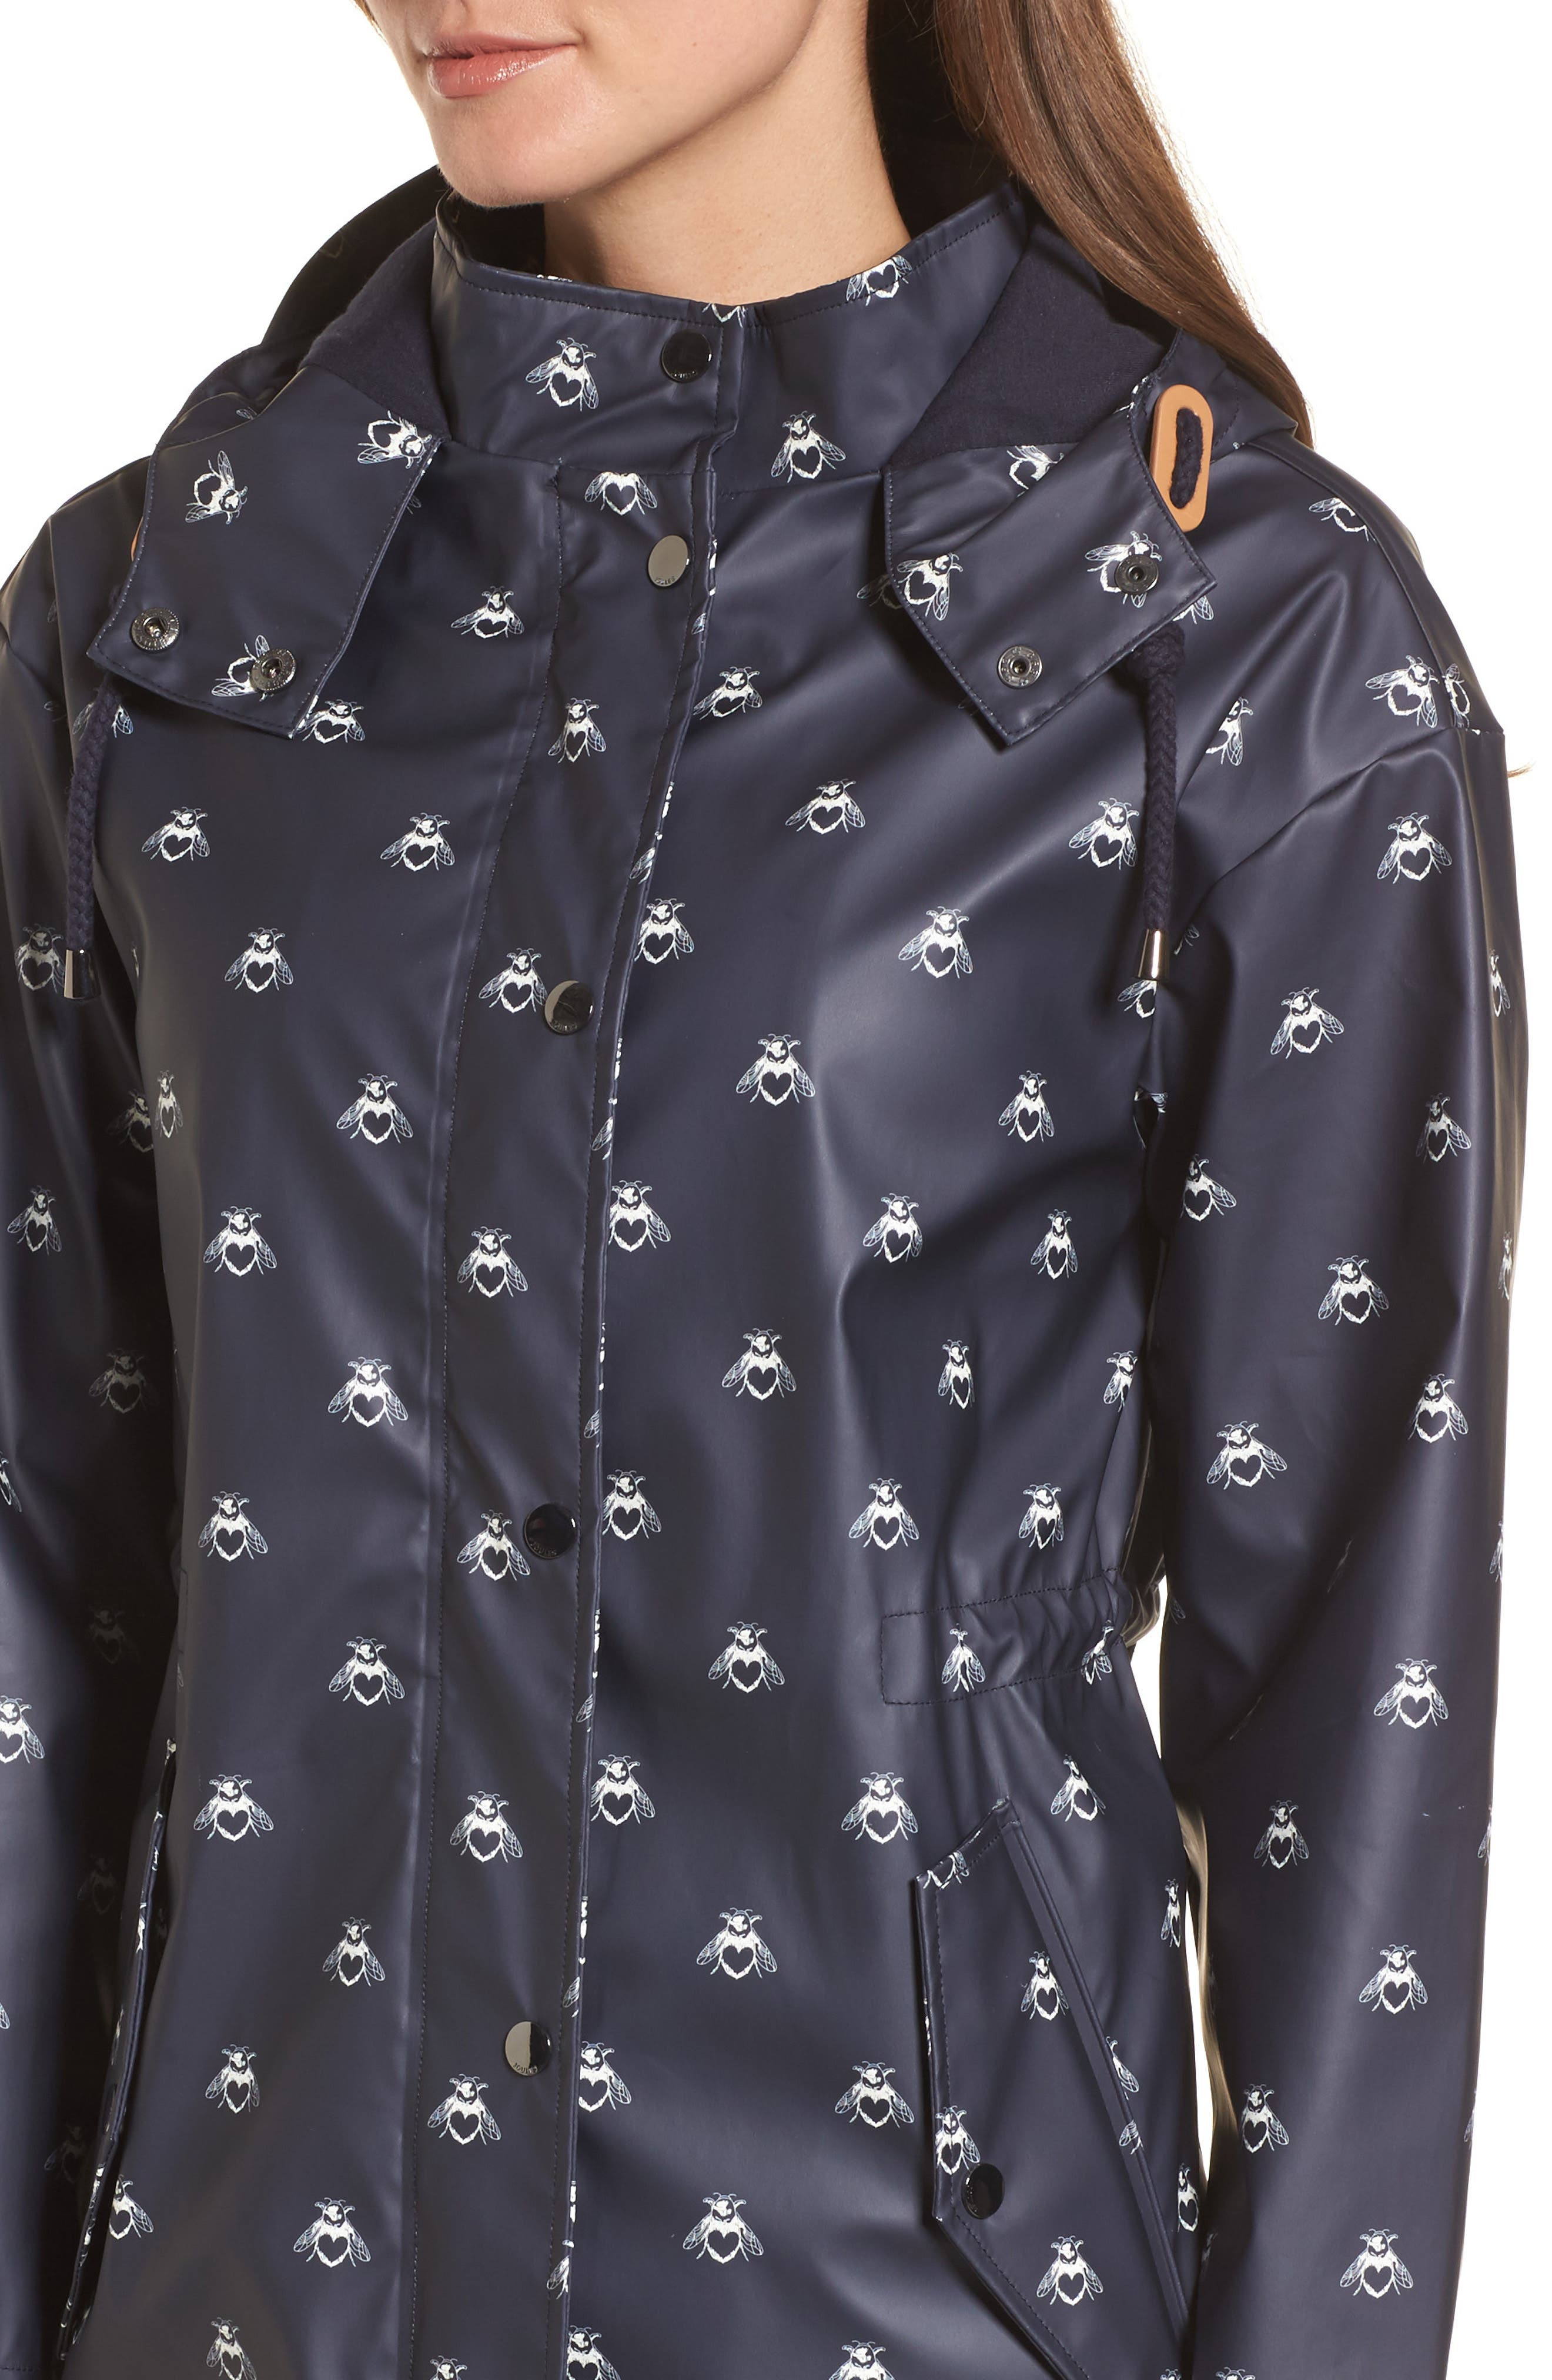 Right As Rain Packable Hooded Raincoat,                             Alternate thumbnail 4, color,                             Navy Love Bees